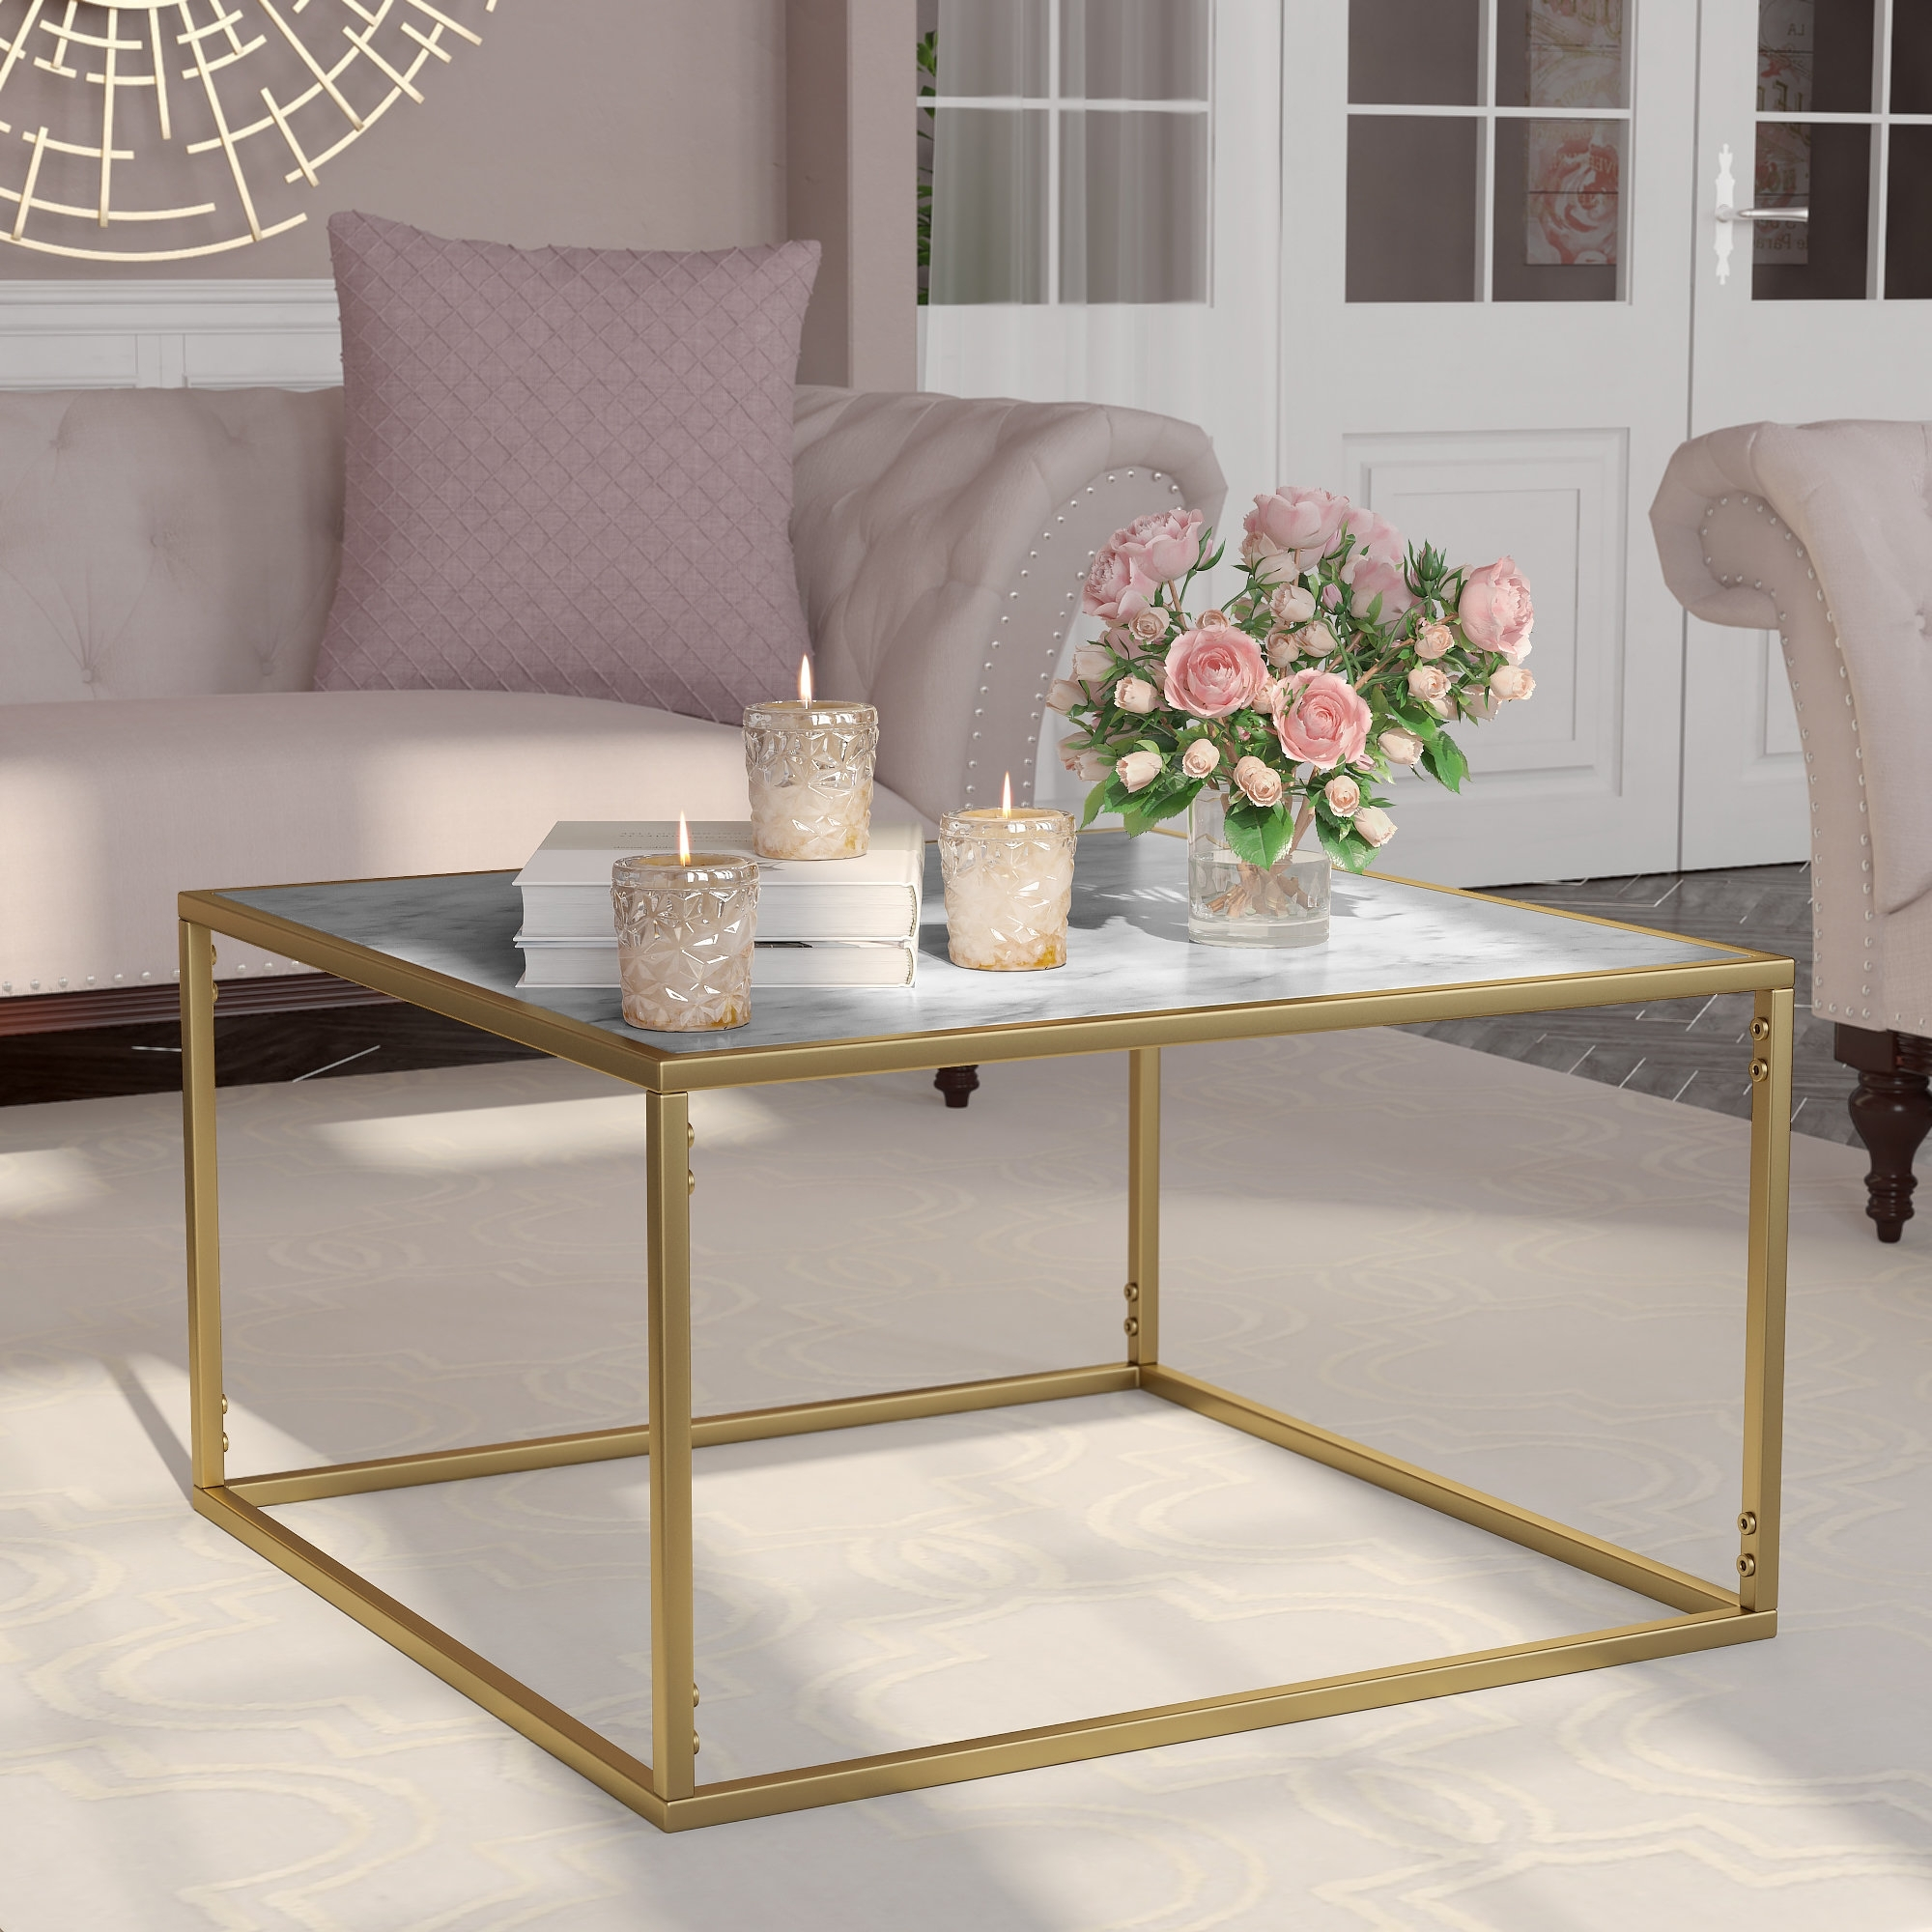 Wayfair Intended For Preferred 2 Tone Grey And White Marble Coffee Tables (View 19 of 20)